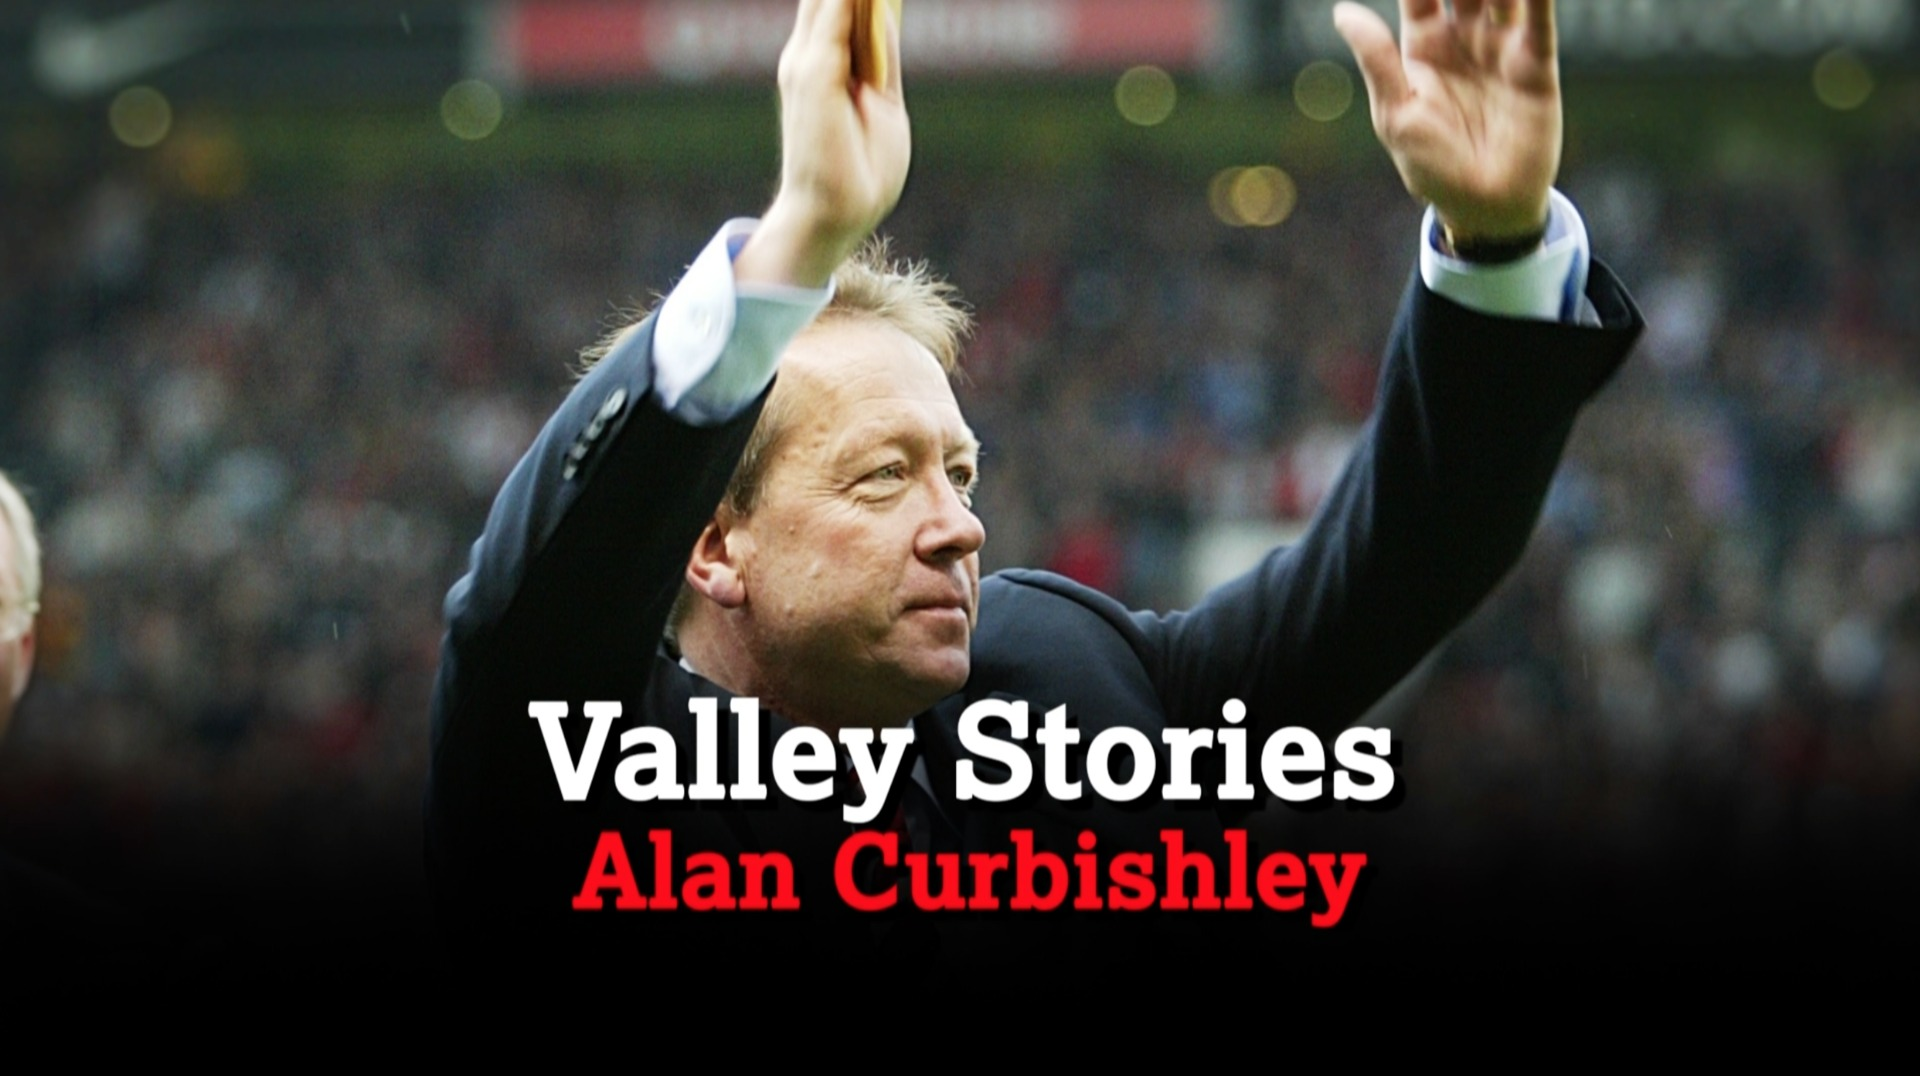 VALLEY STORIES | Alan Curbishley